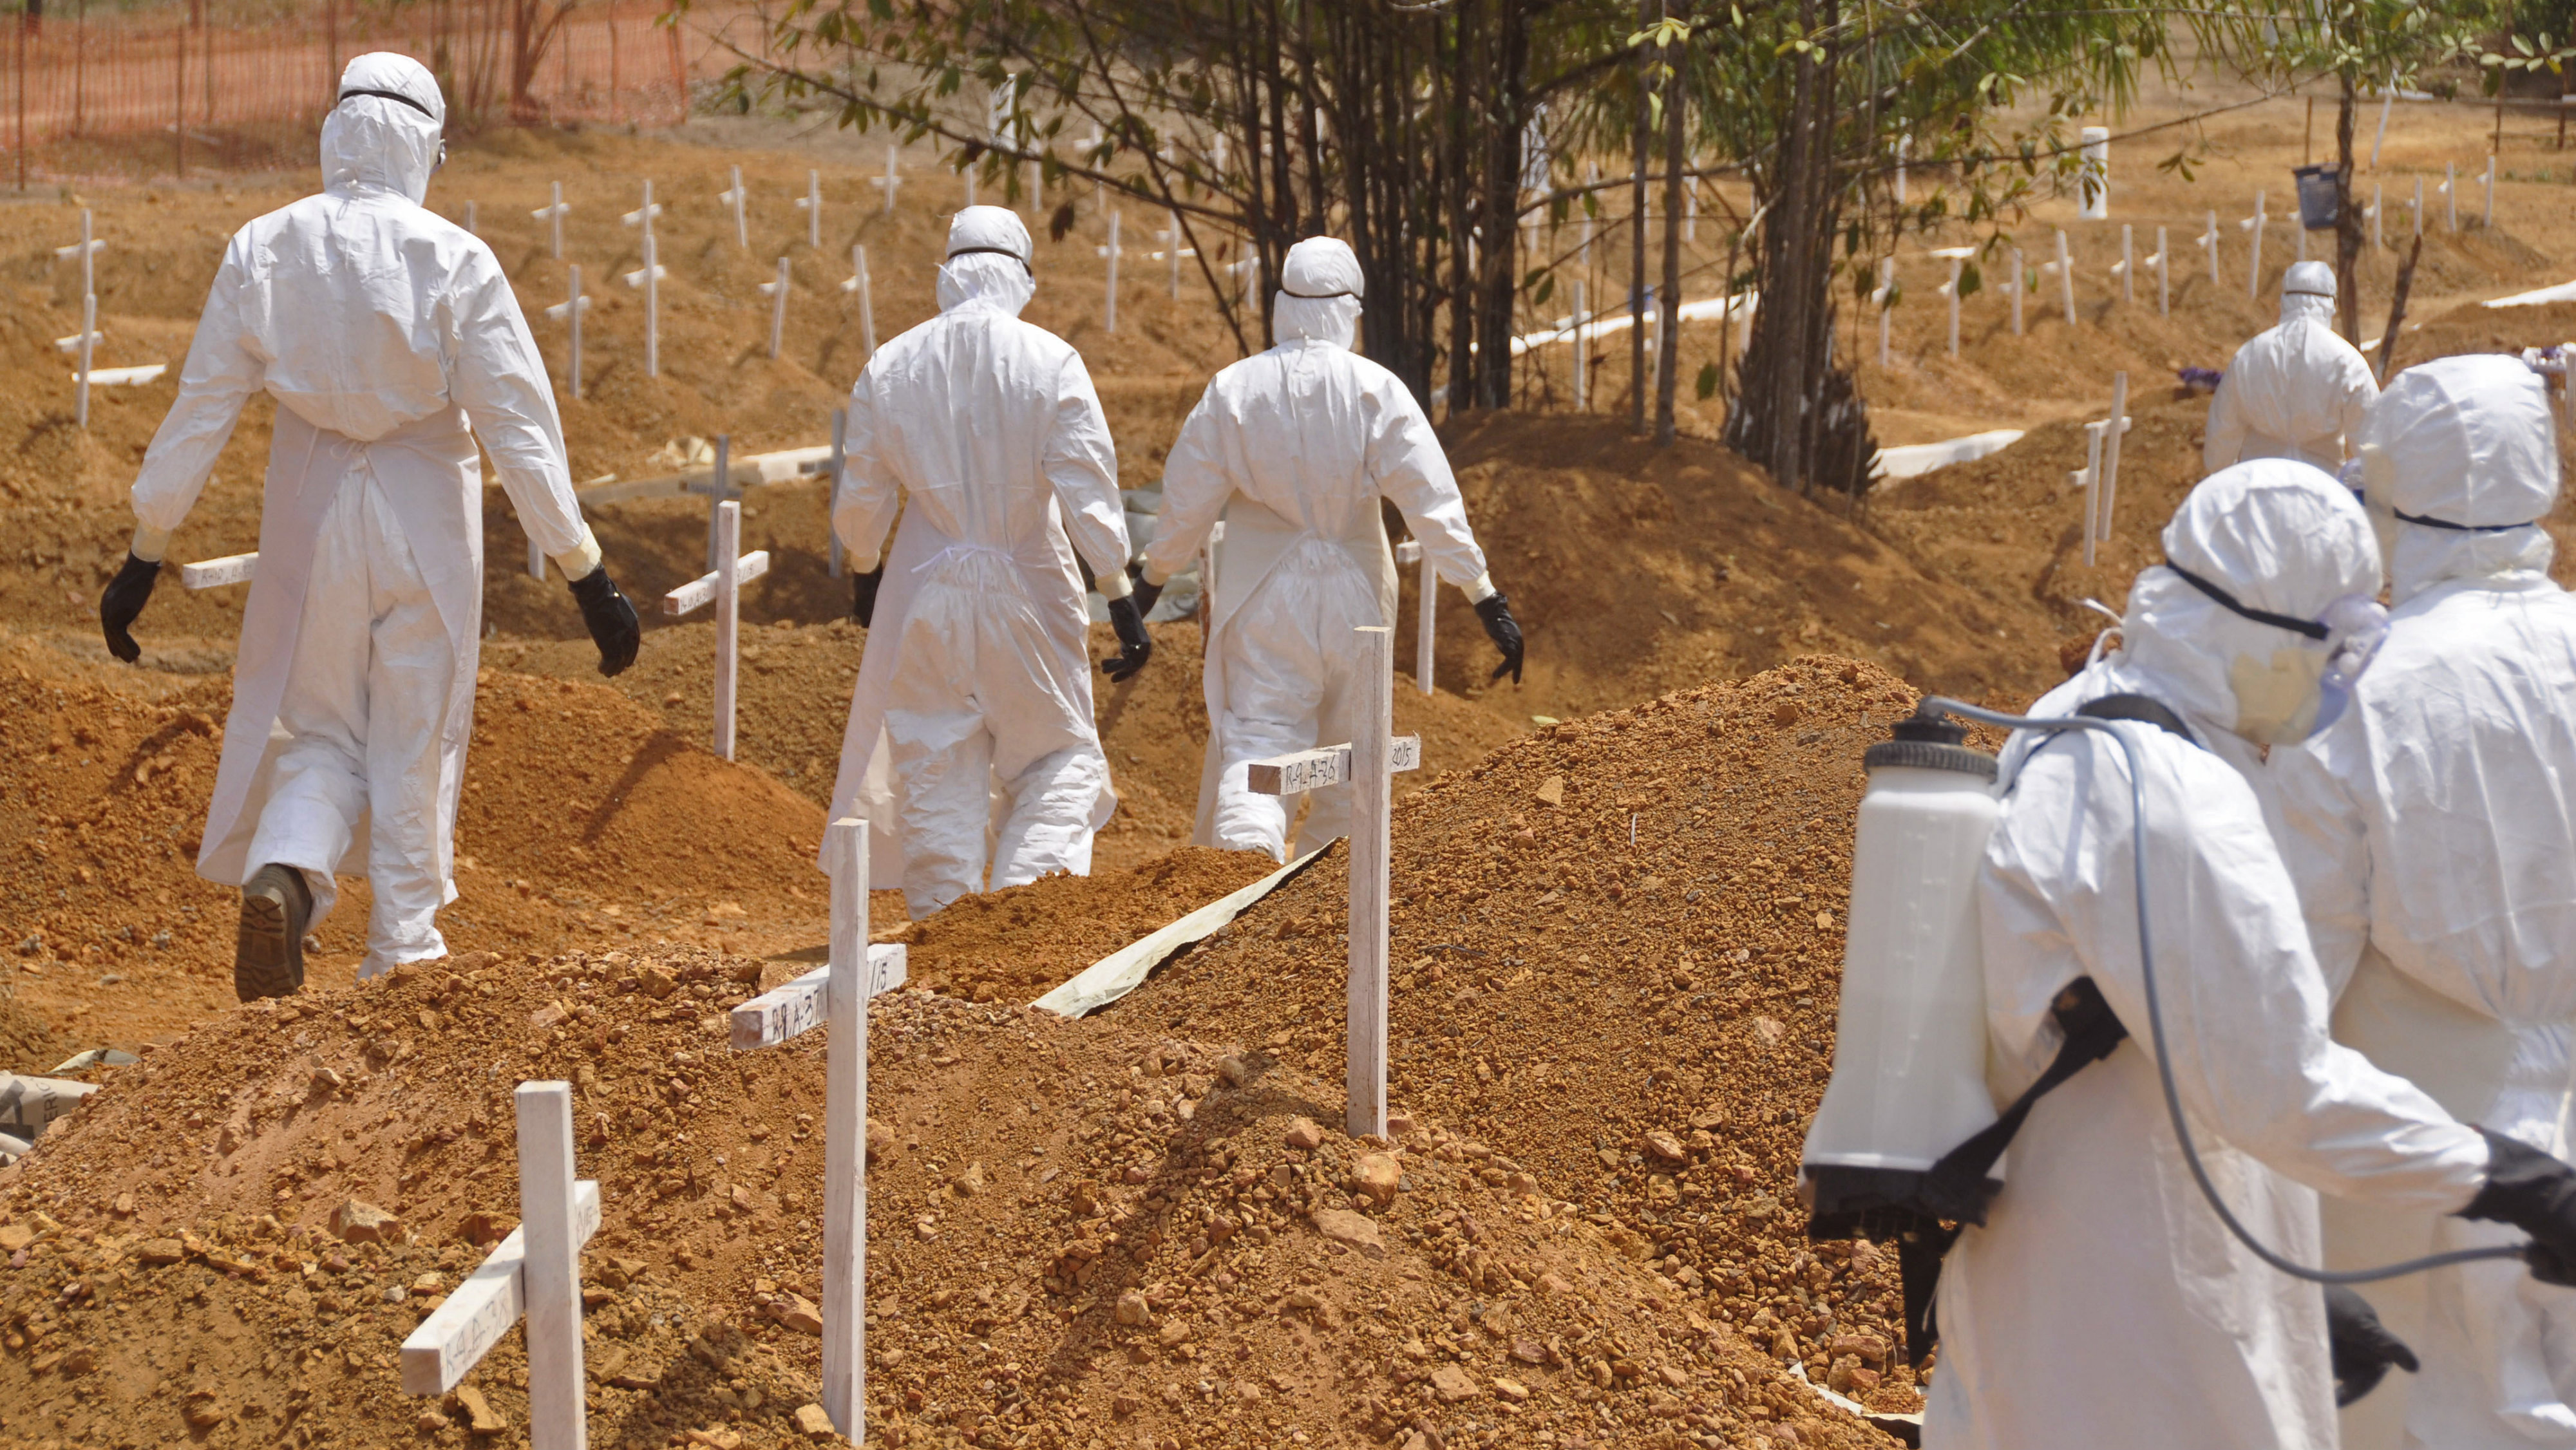 In this file photo dated Wednesday, March 11, 2015, health workers walk inside a new graveyard for Ebola victims, on the outskirts of Monrovia, Liberia. Despite the drop in reported Ebola cases, Dr. Bruce Aylward, leading WHO's Ebola response, declared Friday April 10, 2015, that it's too early for World Health Organization to downgrade the global emergency status of the biggest-ever Ebola outbreak in Africa.